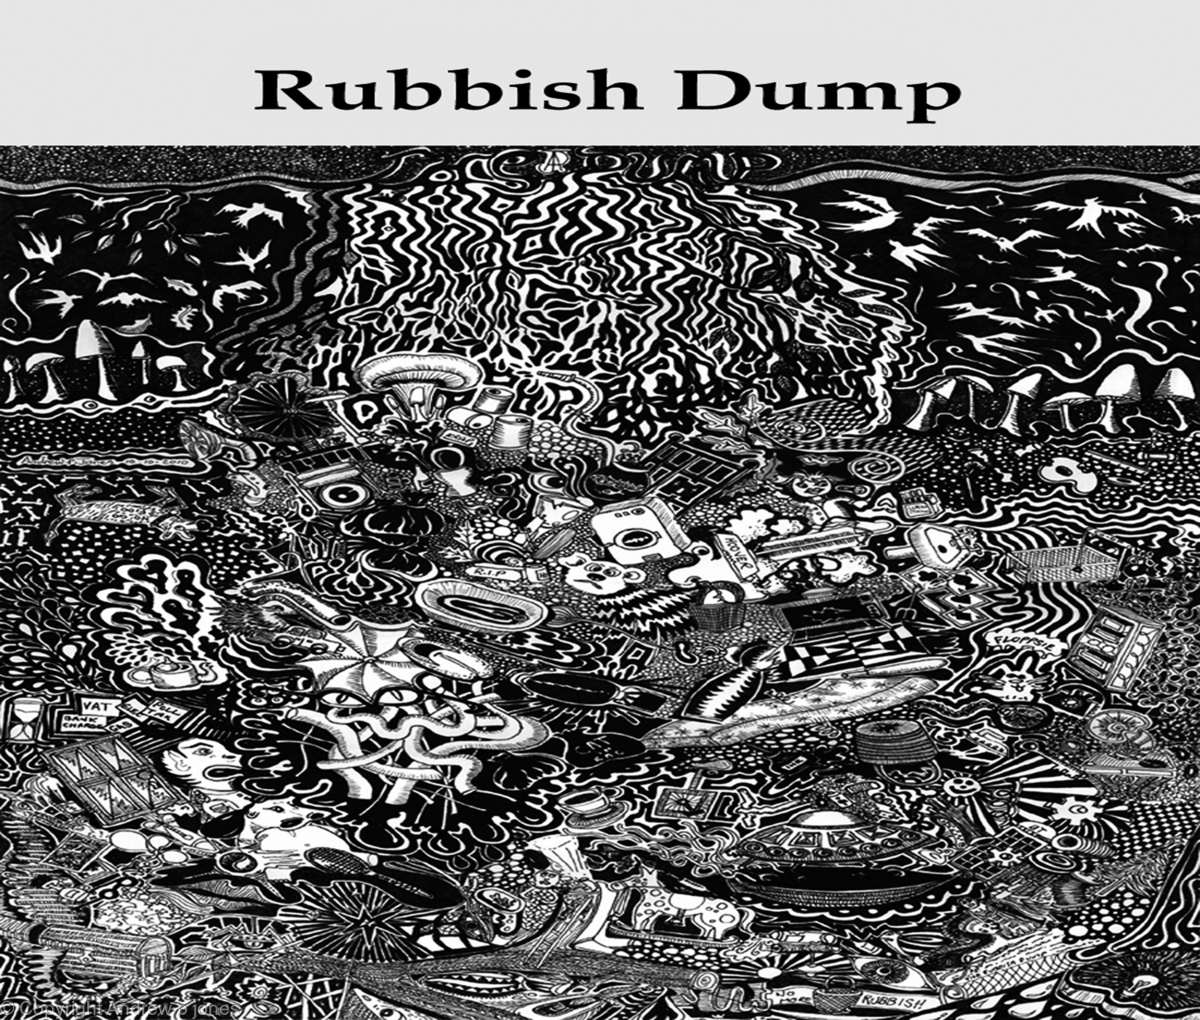 THE RUBBISH DUMP